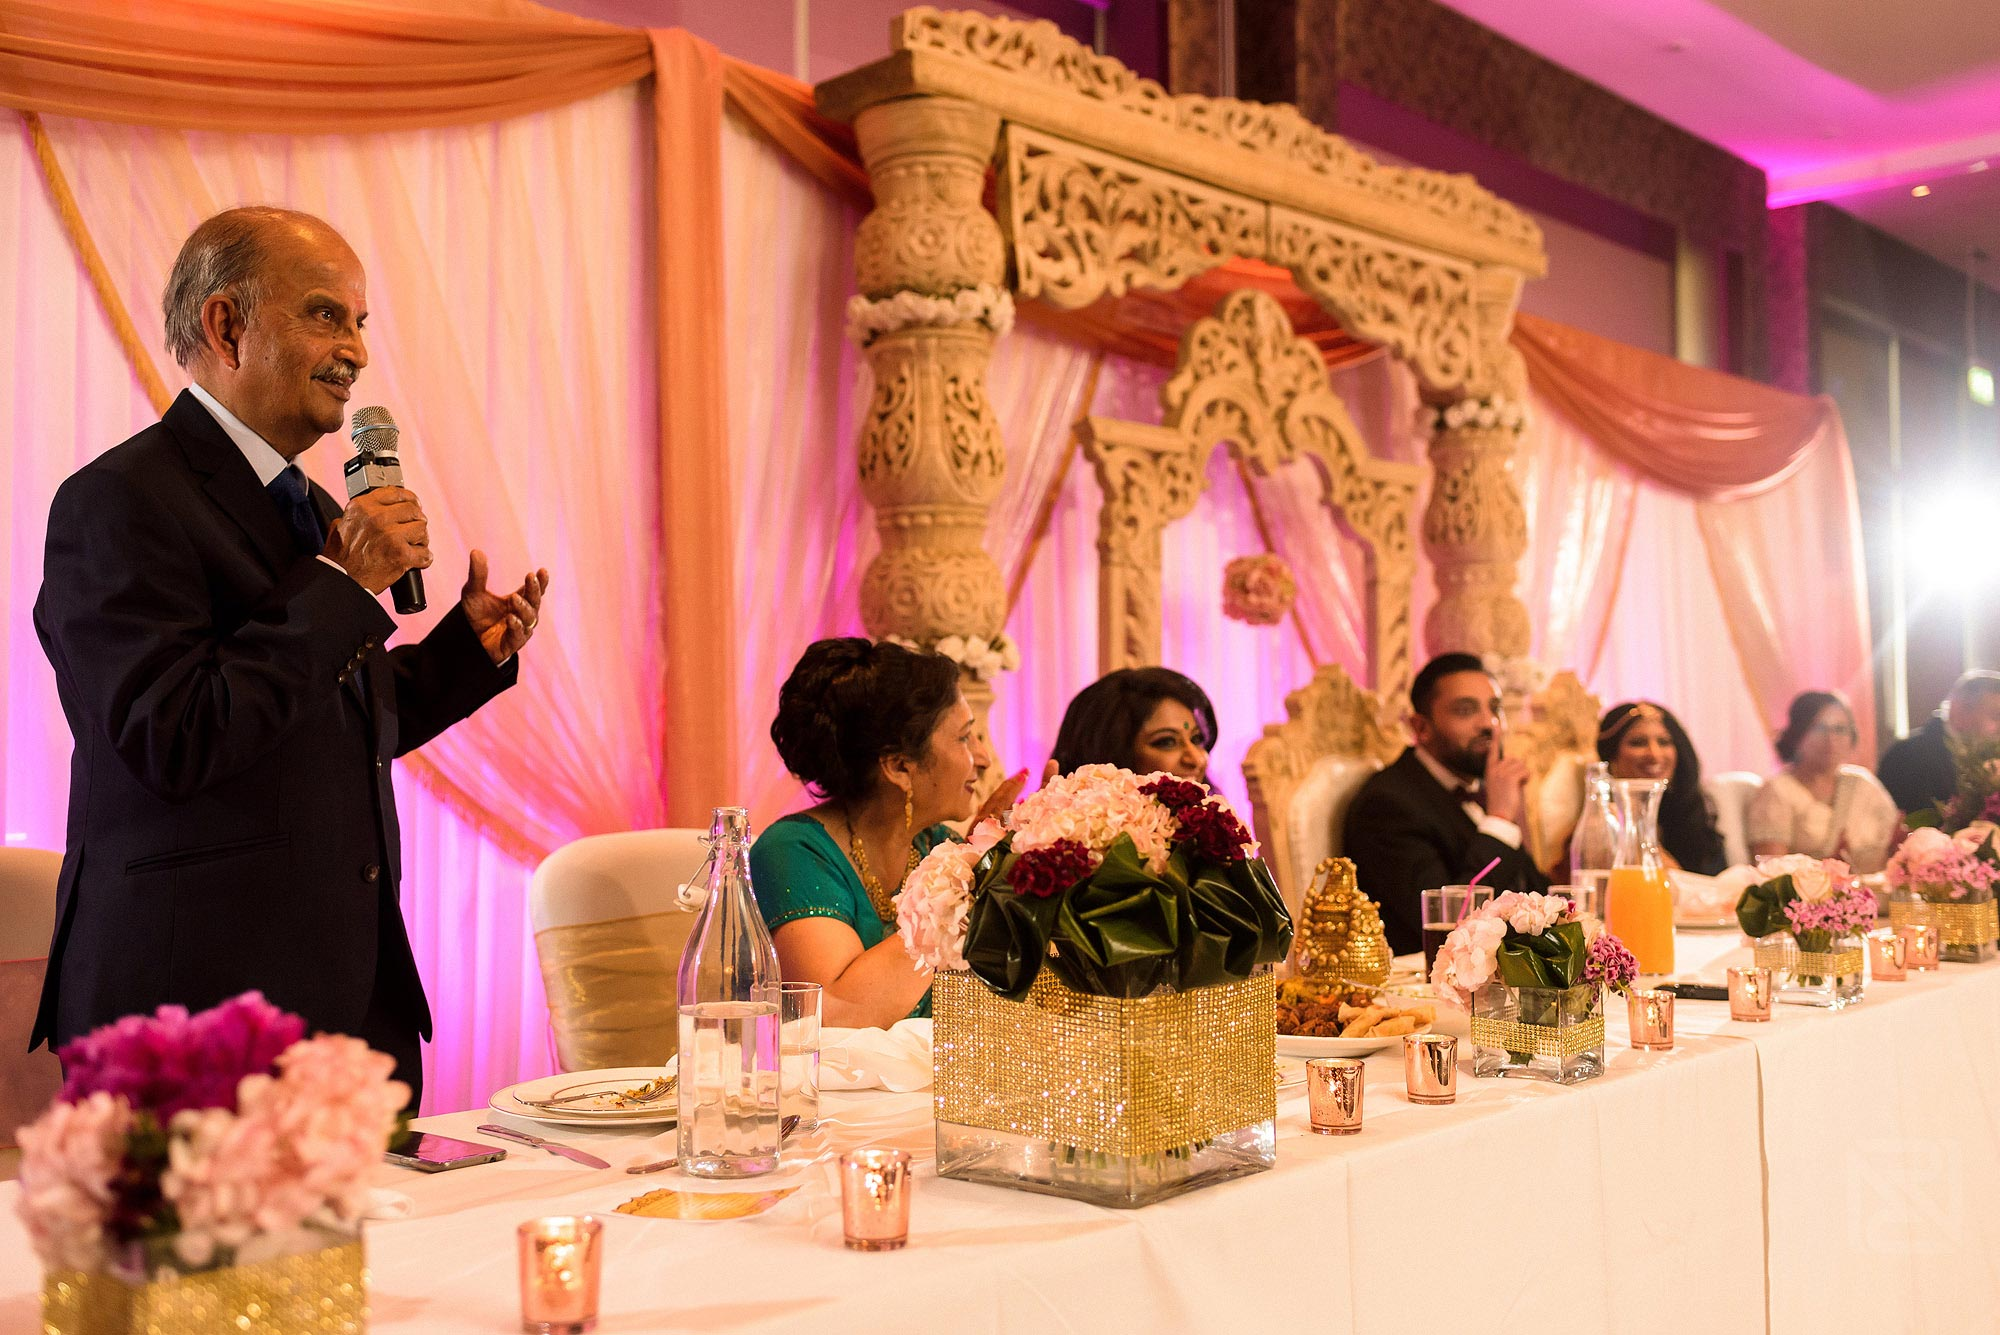 father of the bride giving wedding speech